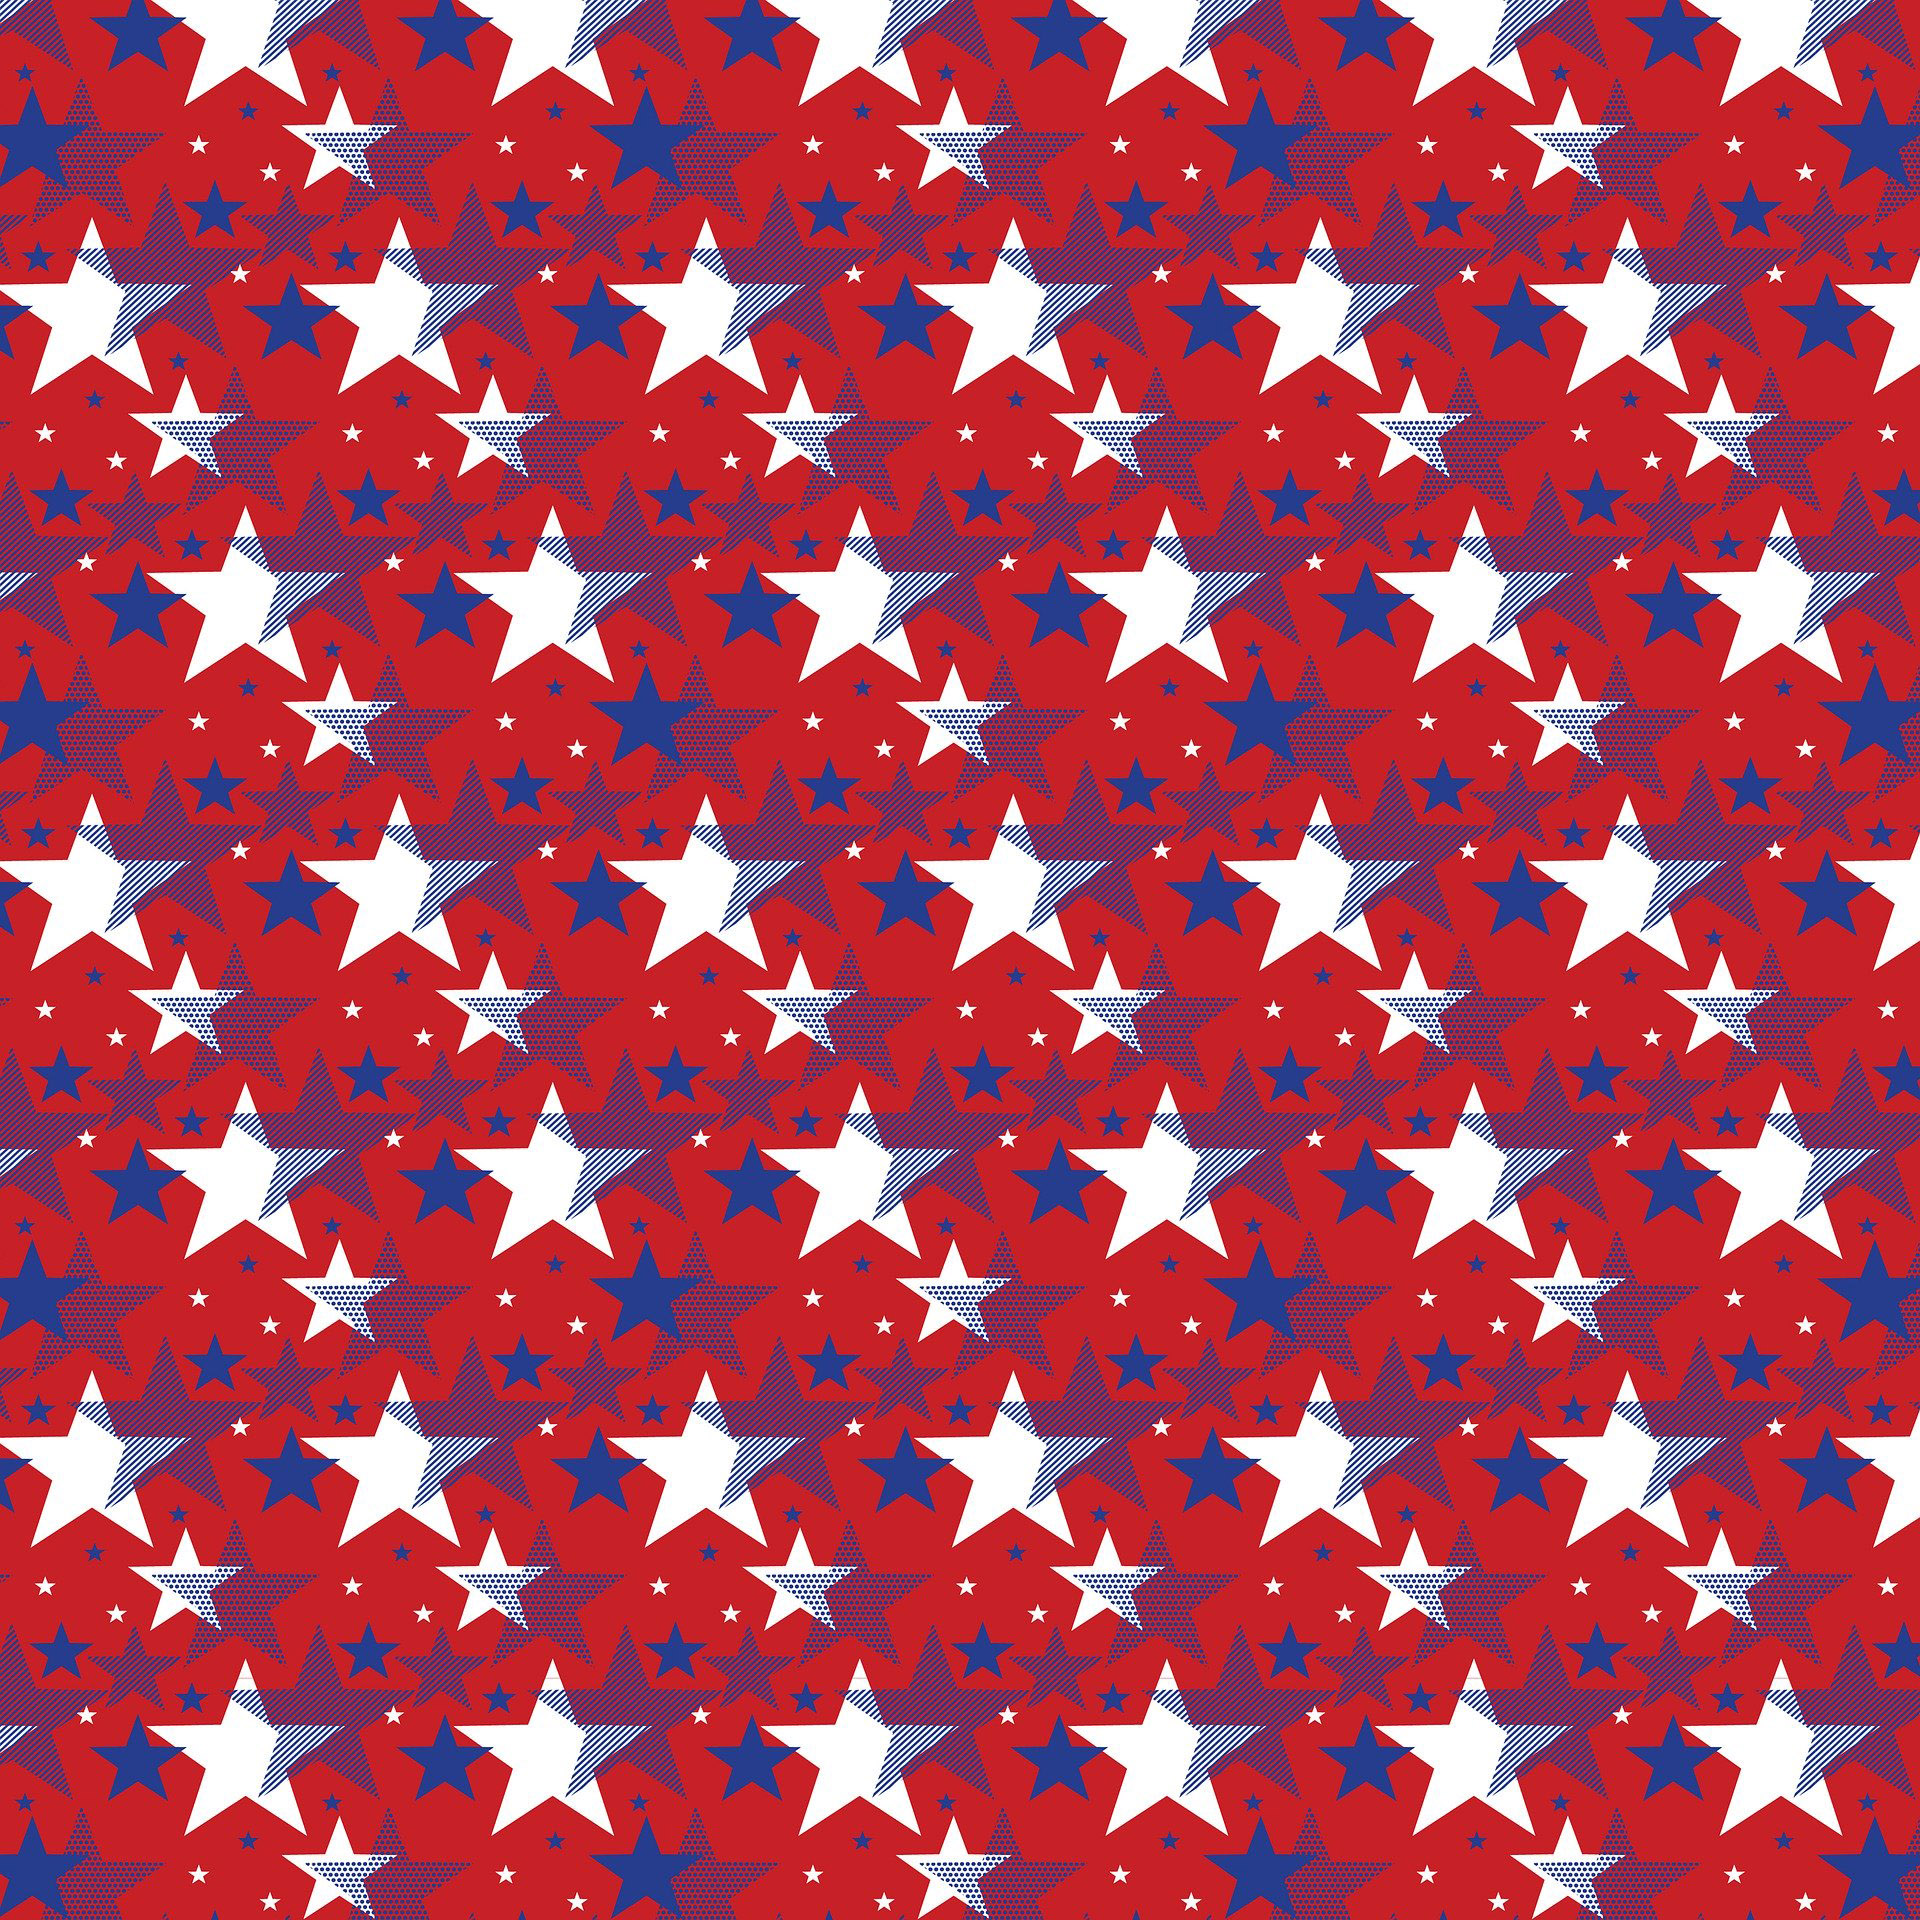 4th of July - Blue and White Stars on Red Background